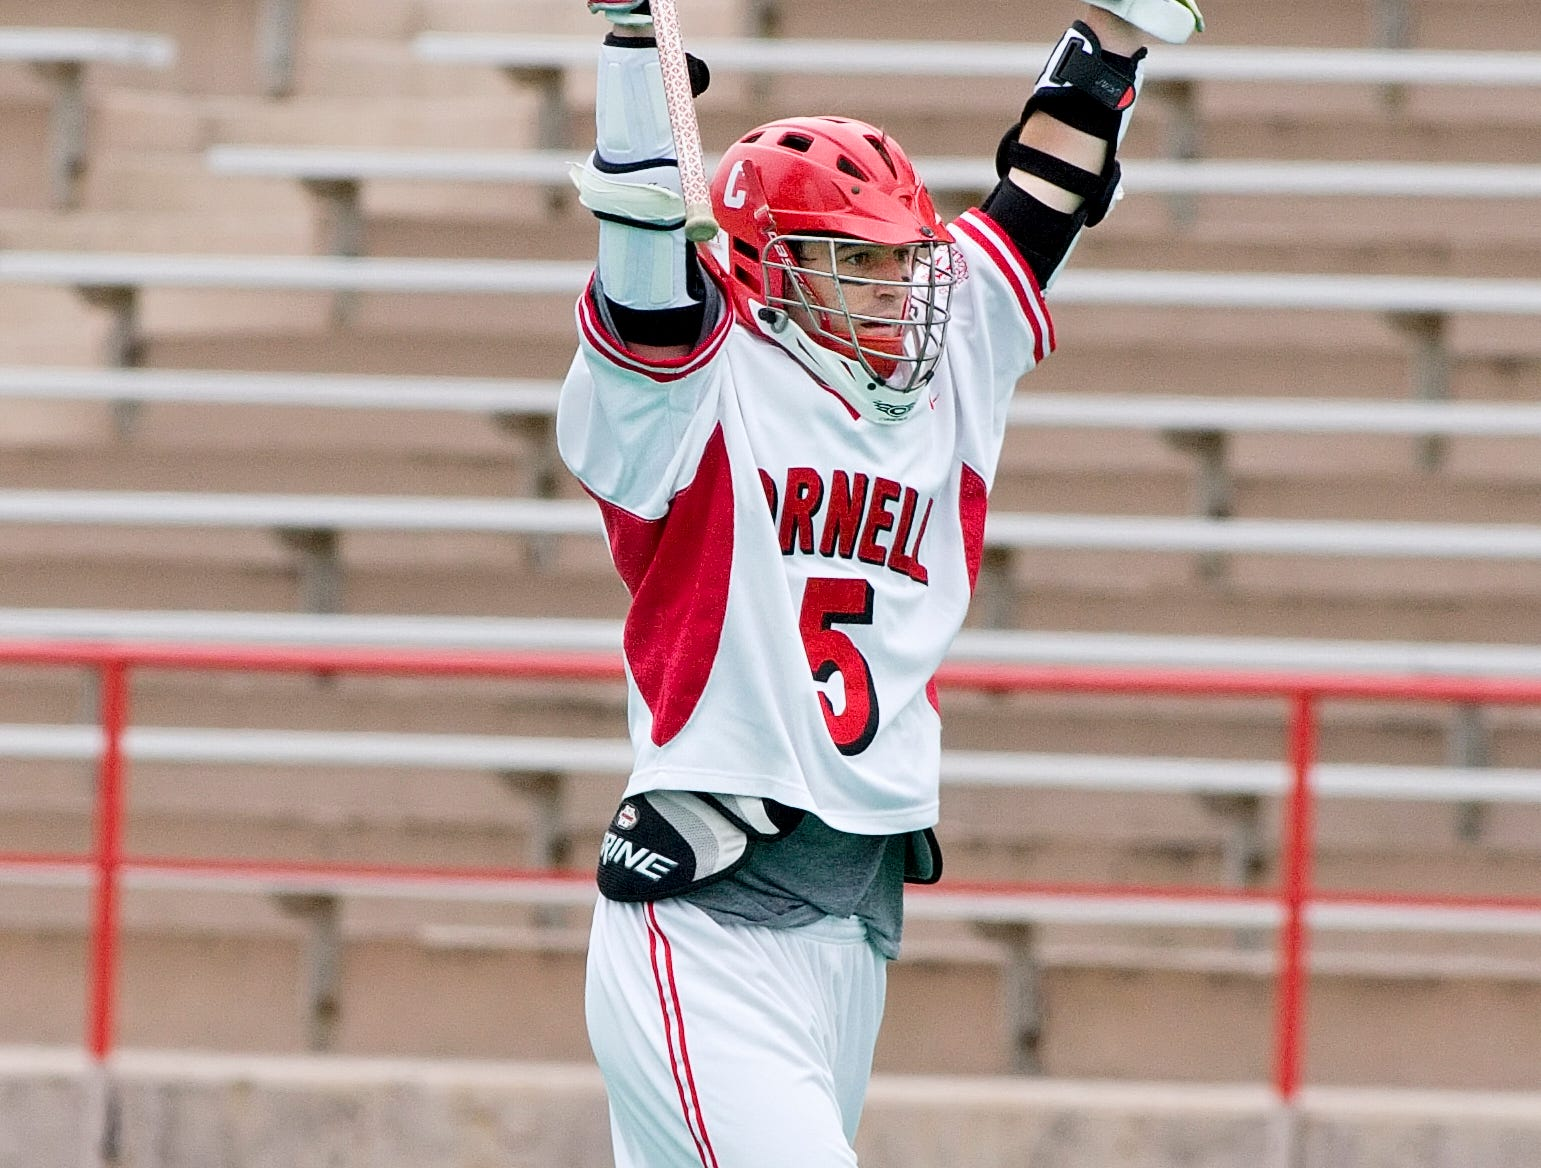 2007: Cornell's Eric Pittard celebrates his goal in the third period of Saturday's NCAA Div. 1 Championship first round against Towson at Schoellkopf Field in Ithaca.